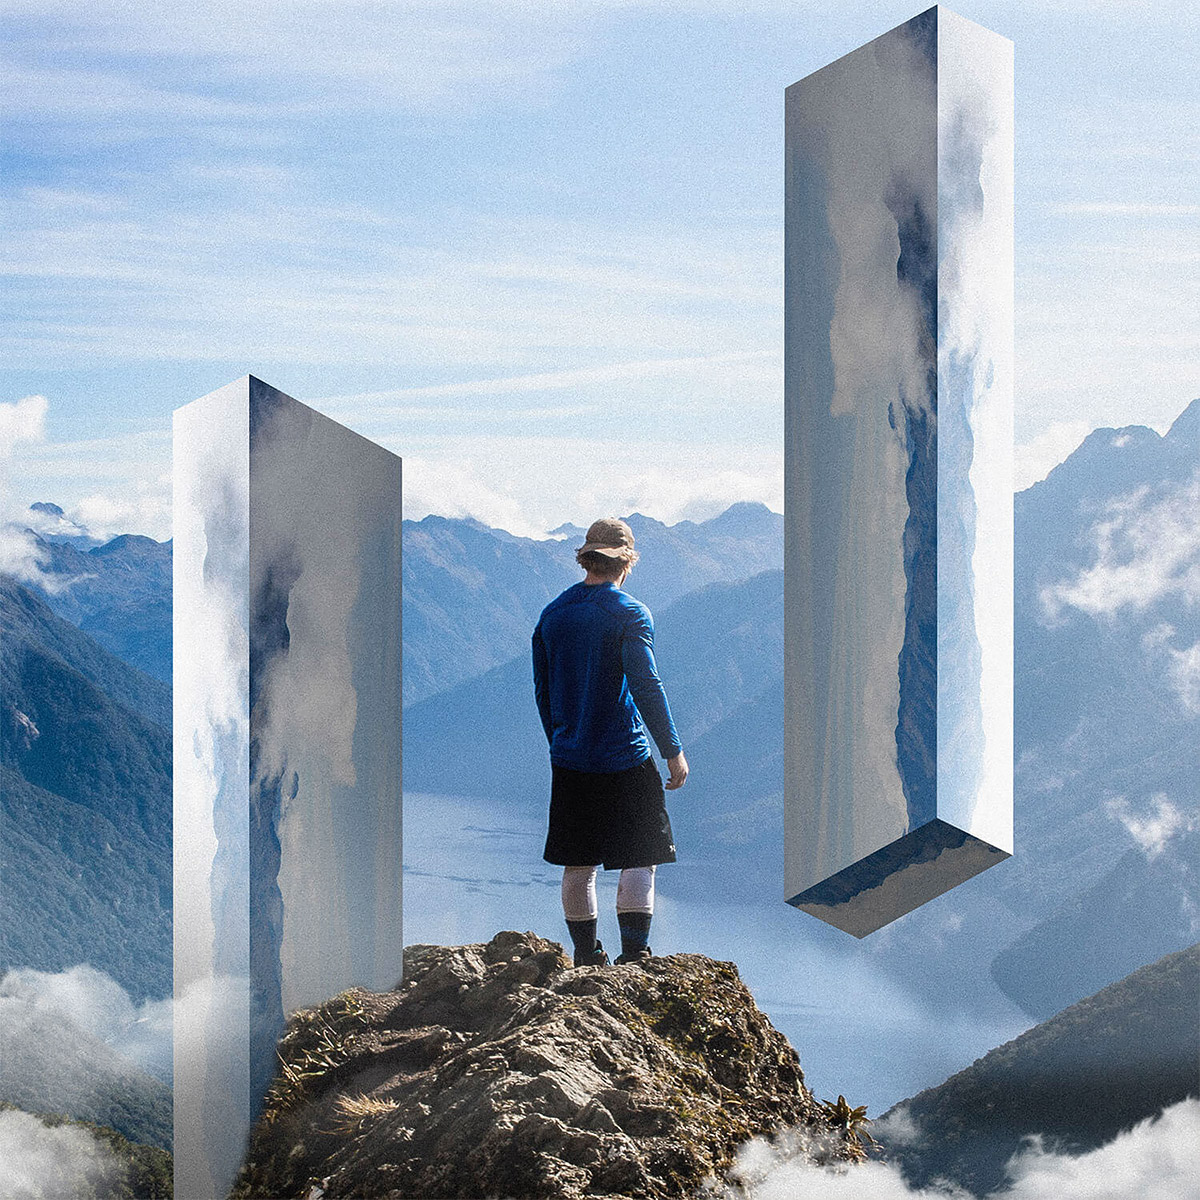 Landscape Mirrors: Photo Manipulations by Rigved Sathe